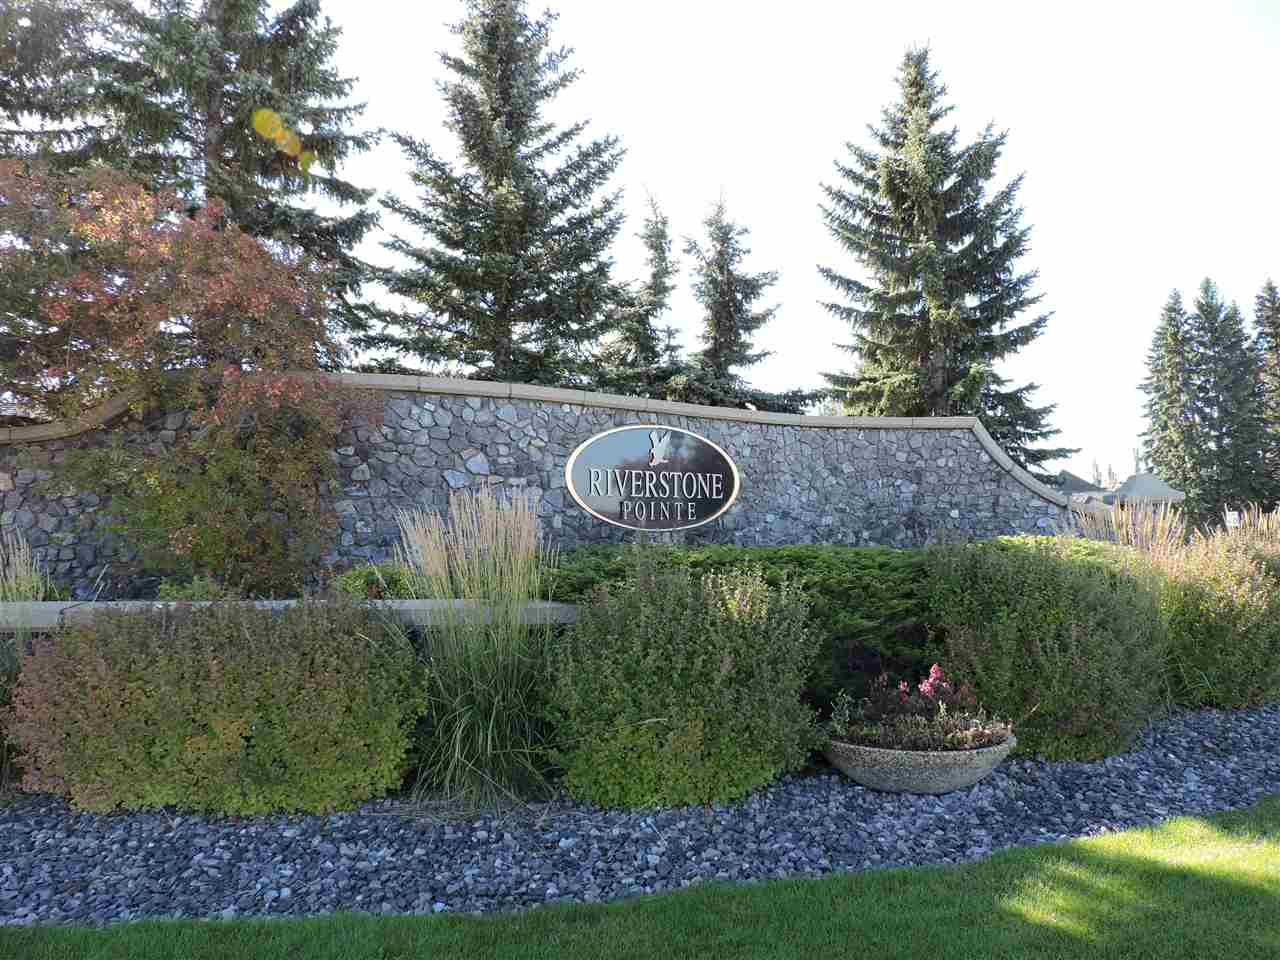 14 Riverridge Crescent, at $399,900